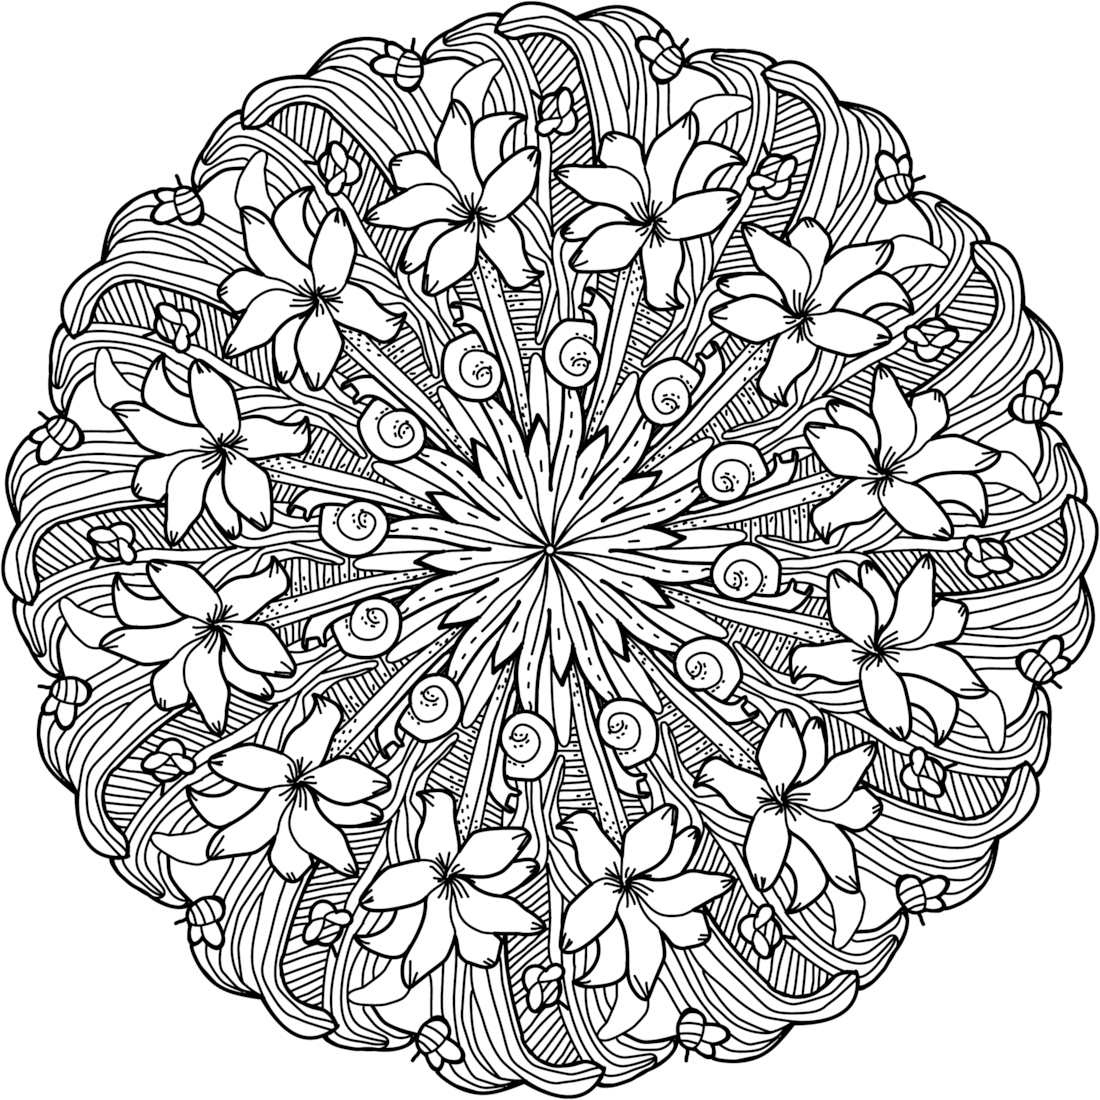 free printable coloring pages for adults and kids free printable coloring pages for adults advanced kids and printable coloring free for adults pages